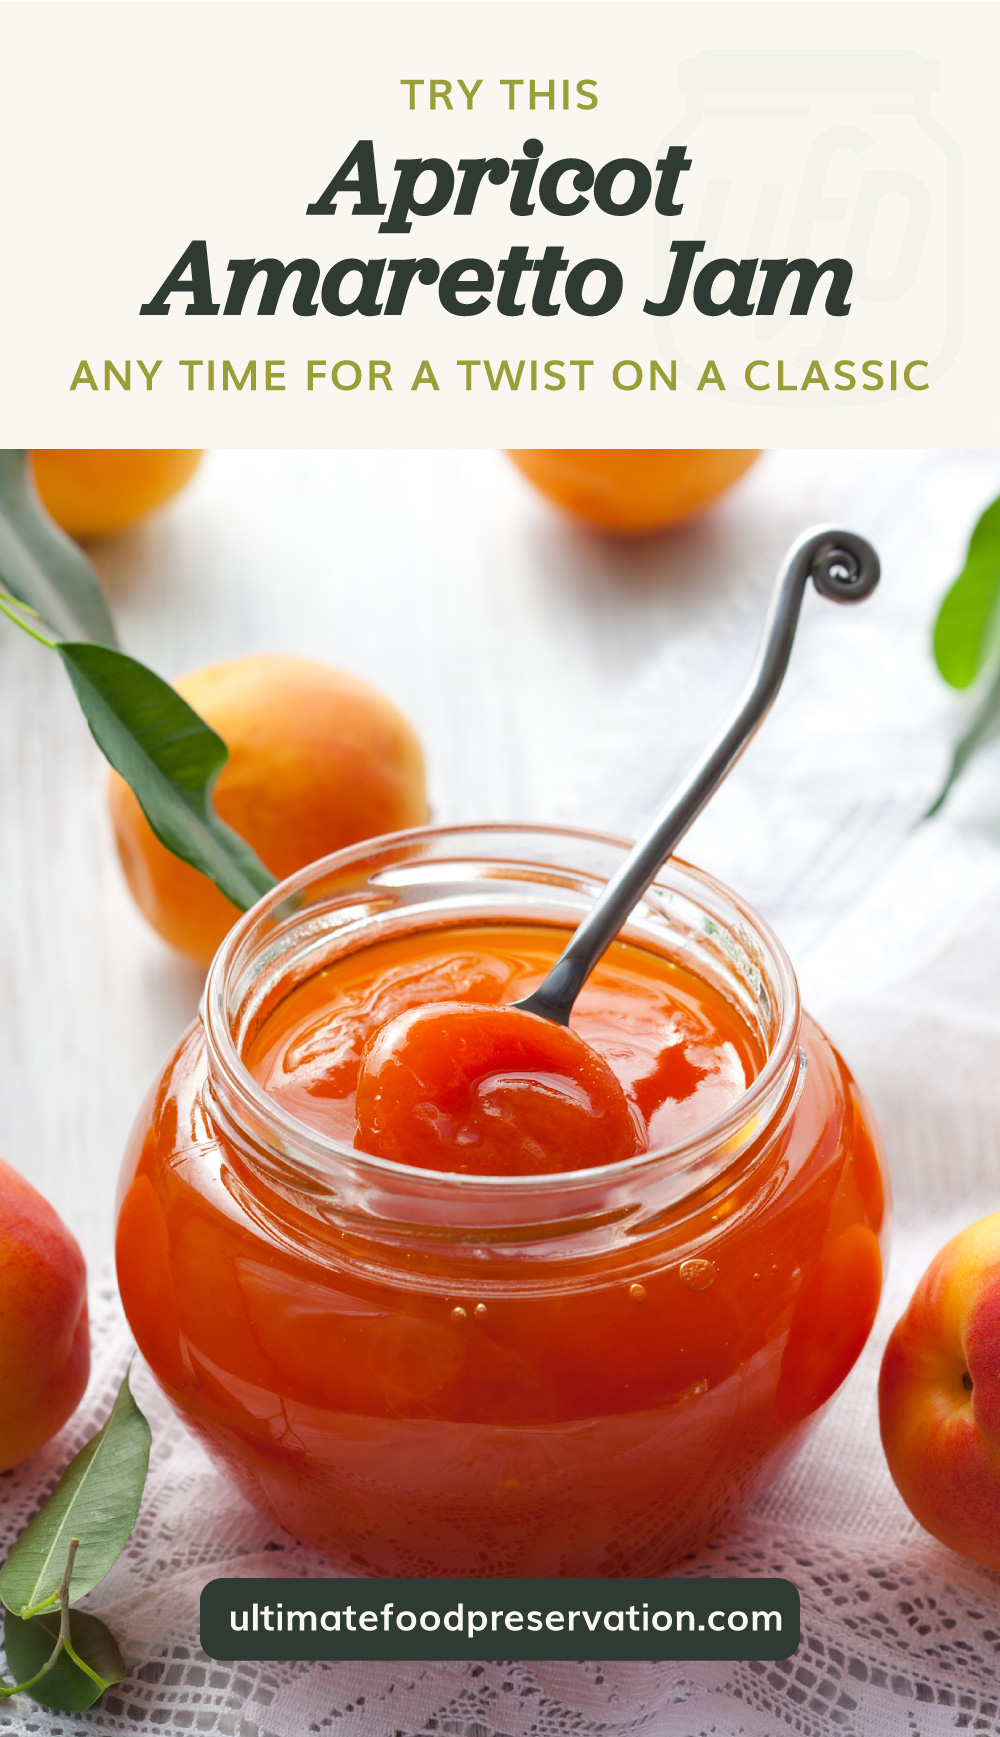 """Text area which says """"Try This Apricot Amaretto Jam Any Time For A Twist On A Classic"""" next to an apricot amaretto jam in a jar surrounded by apricots followed by another text area which says ultimatefoodpreservation.com"""